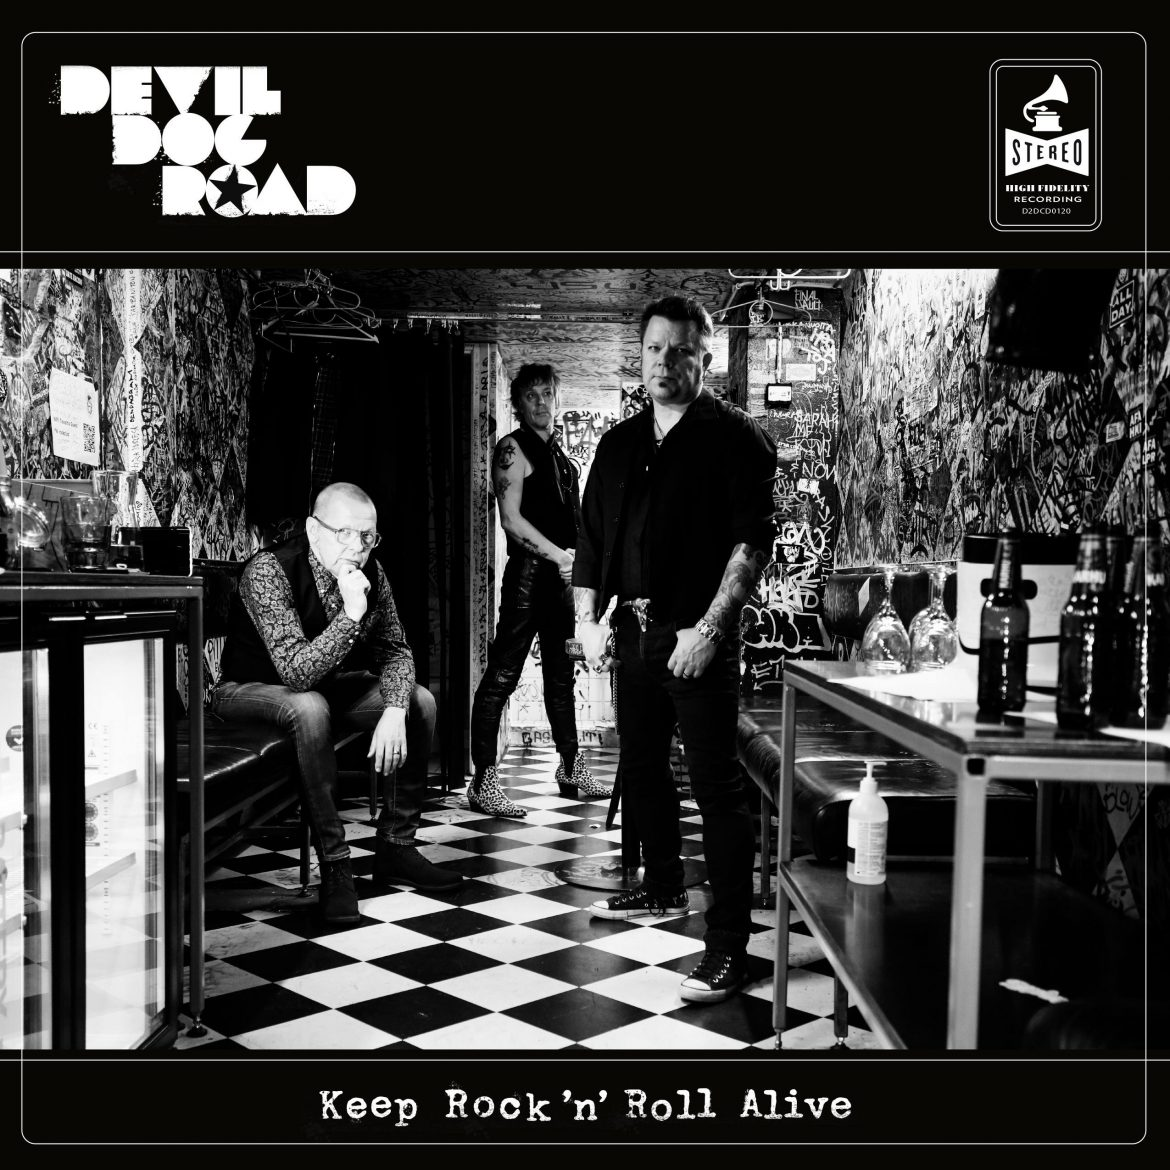 Keep Rock'n'Roll Alive - album cover